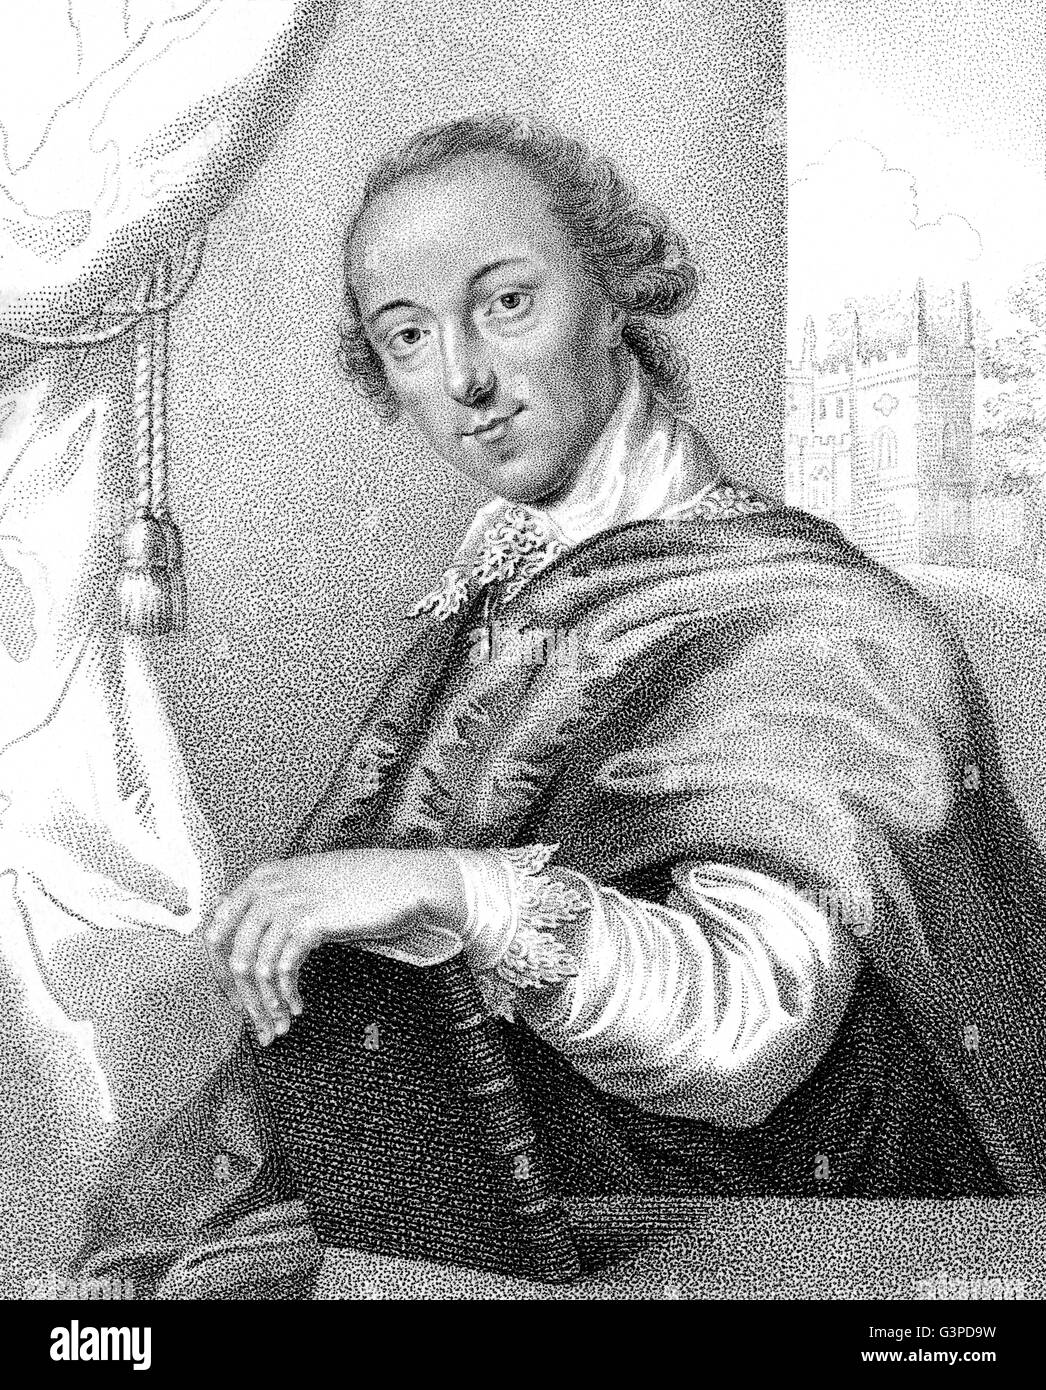 Horatio or Horace Walpole, 4th Earl of Orford, 1717-1797, an English art historian, man of letters, antiquarian - Stock Image